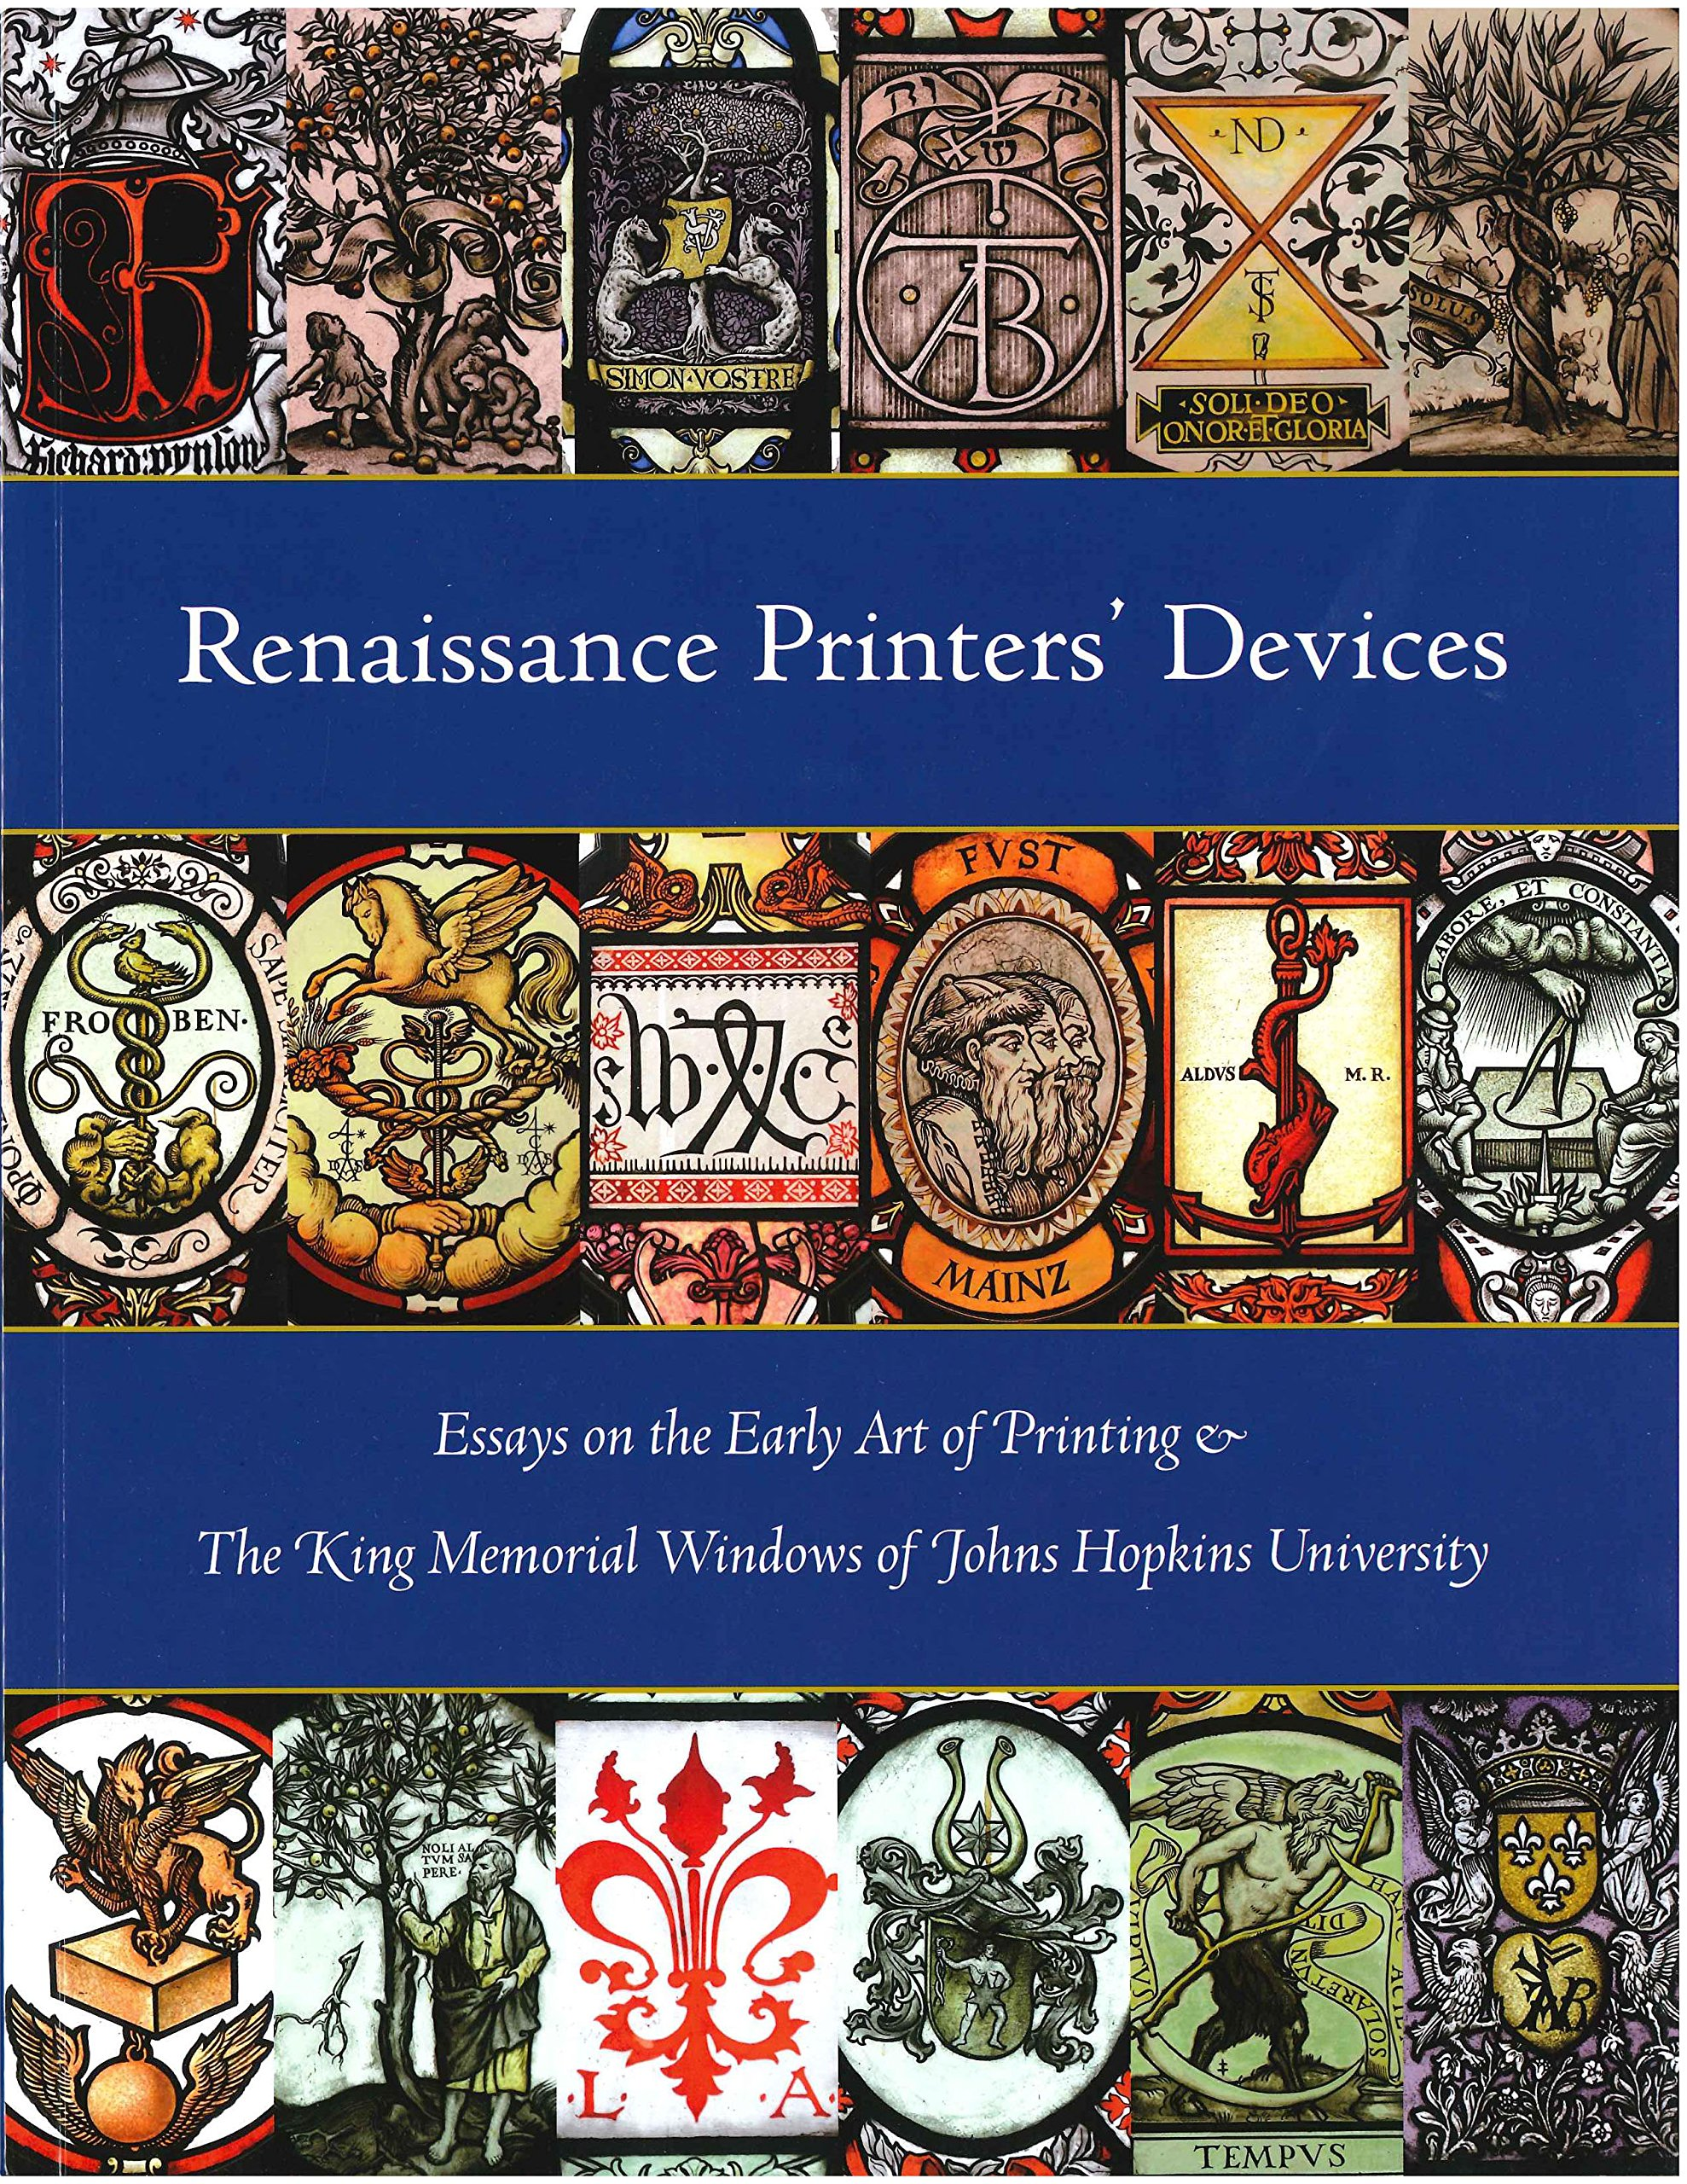 renaissance printers devices essays on the early art of printing renaissance printers devices essays on the early art of printing and the king memorial windows of johns hopkins university earle havens winston tabb